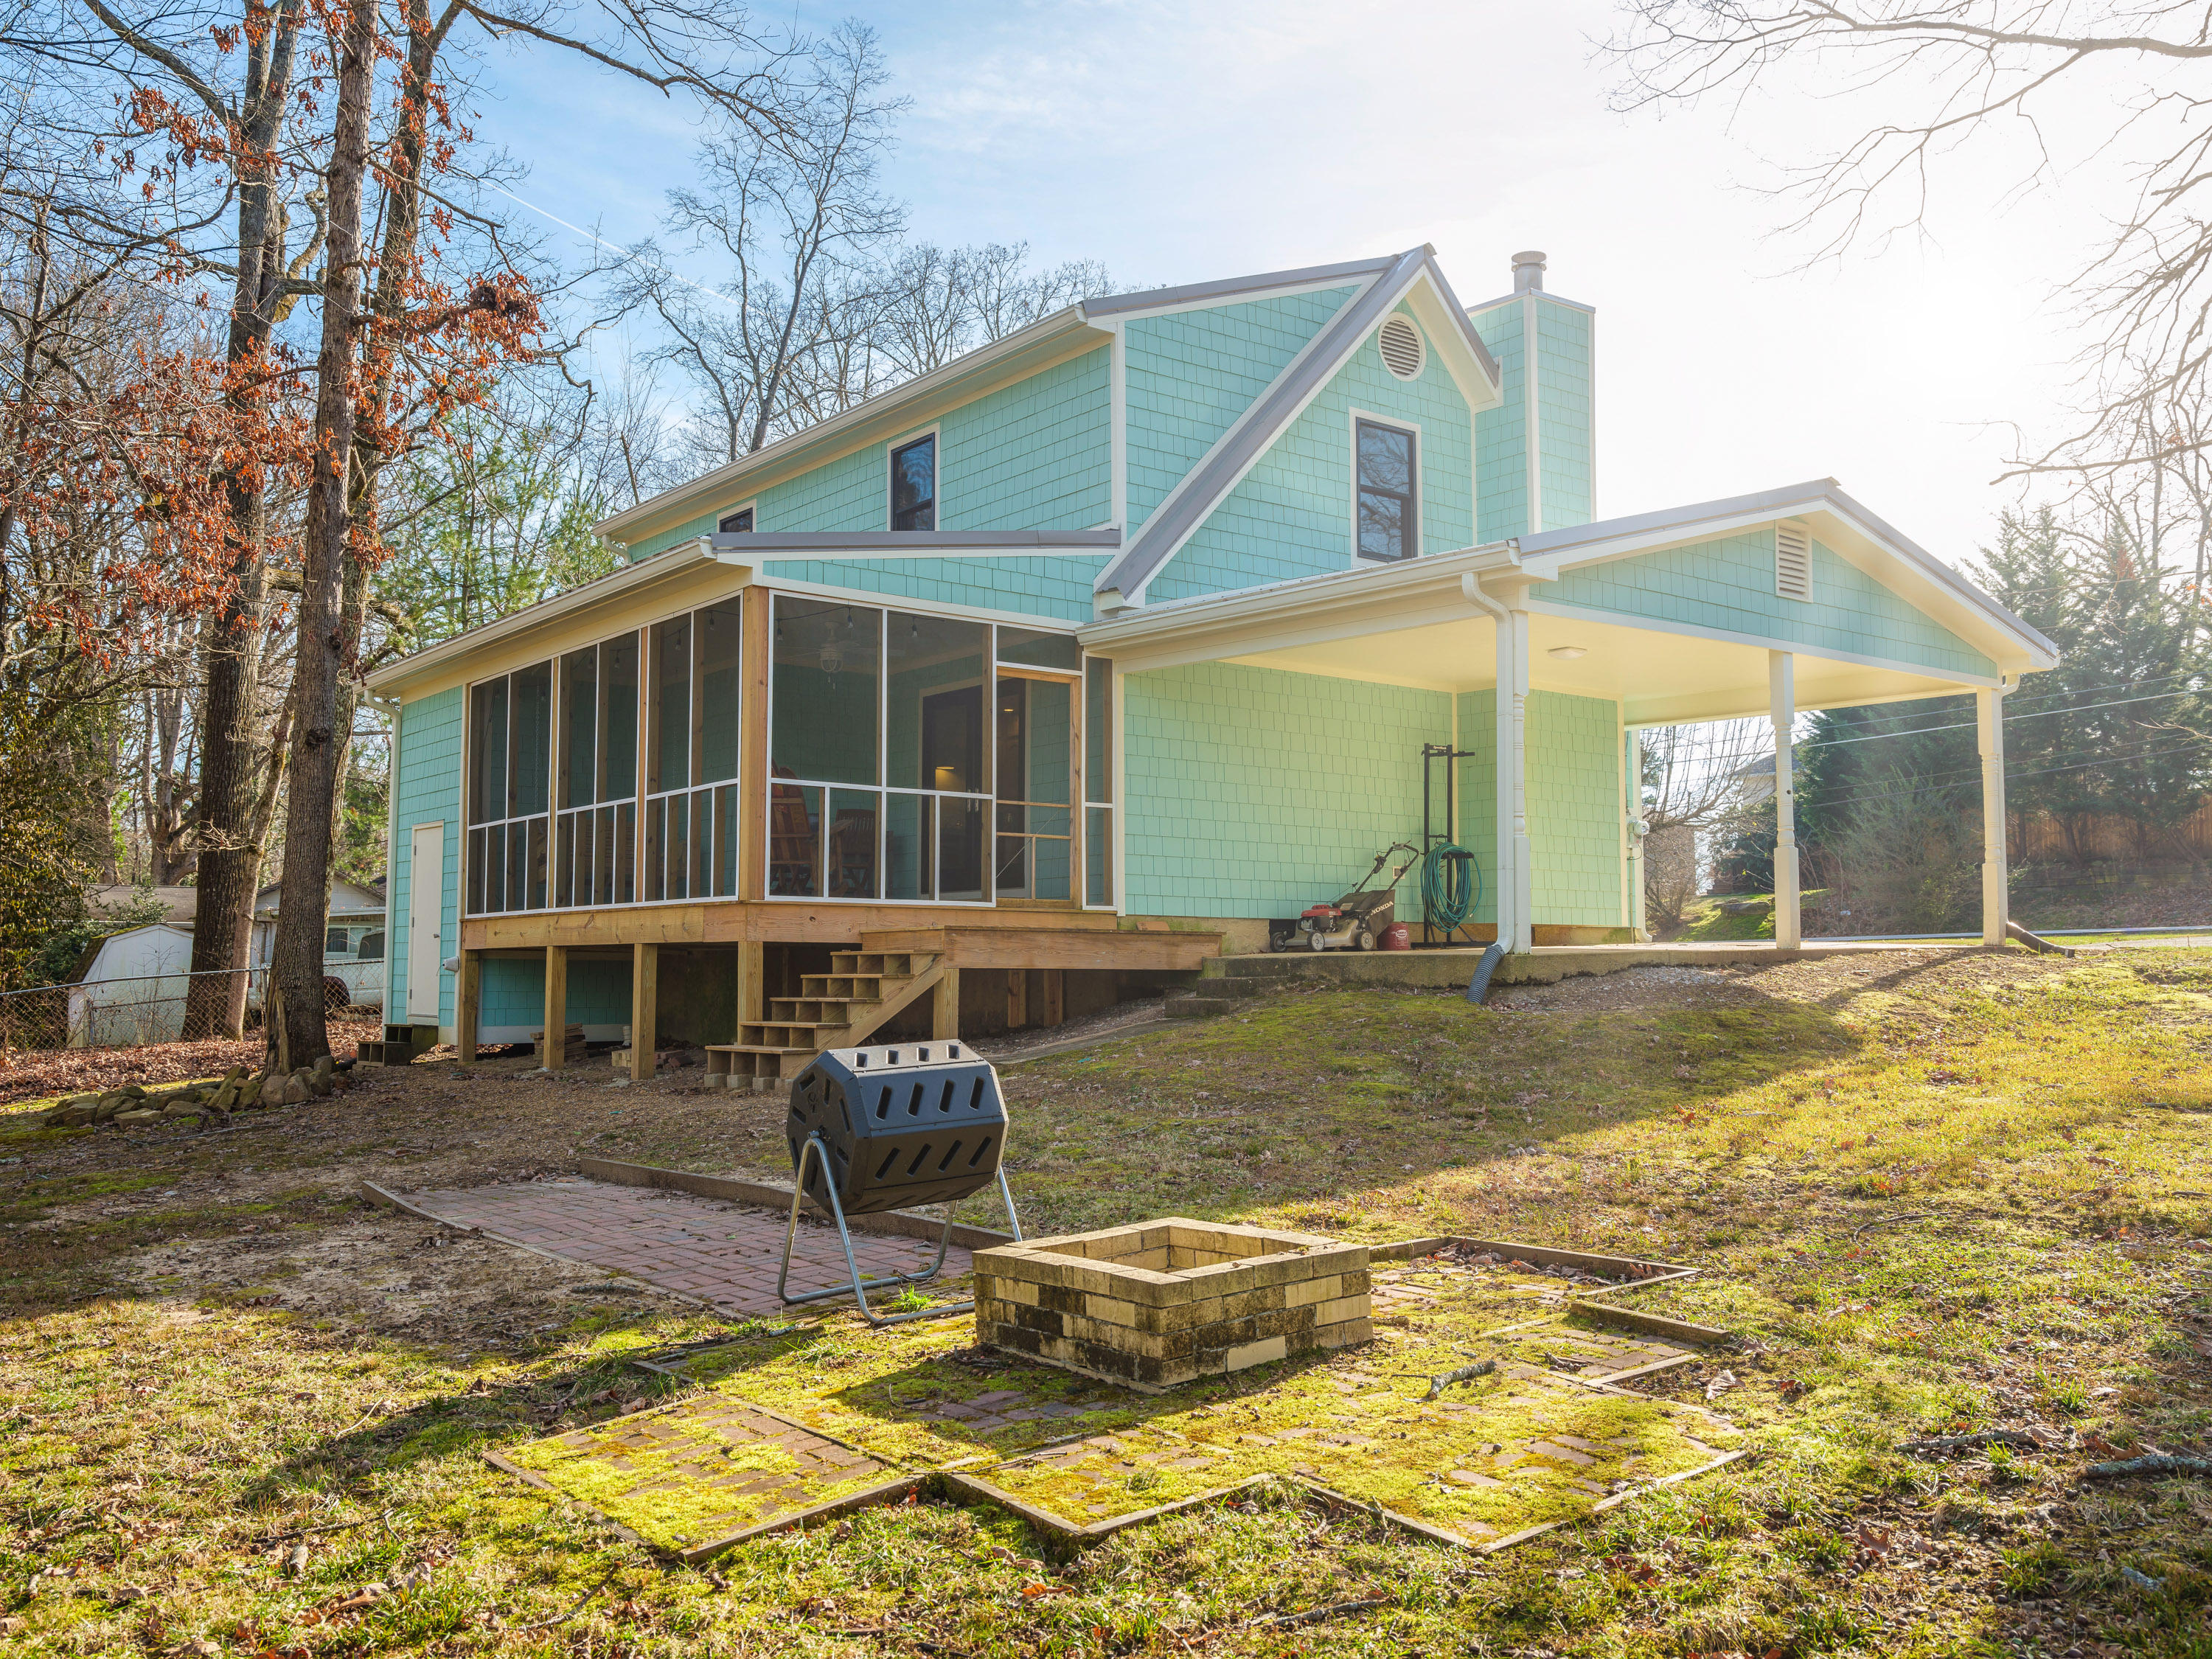 721 Texas Ave, Signal Mountain, TN 37377